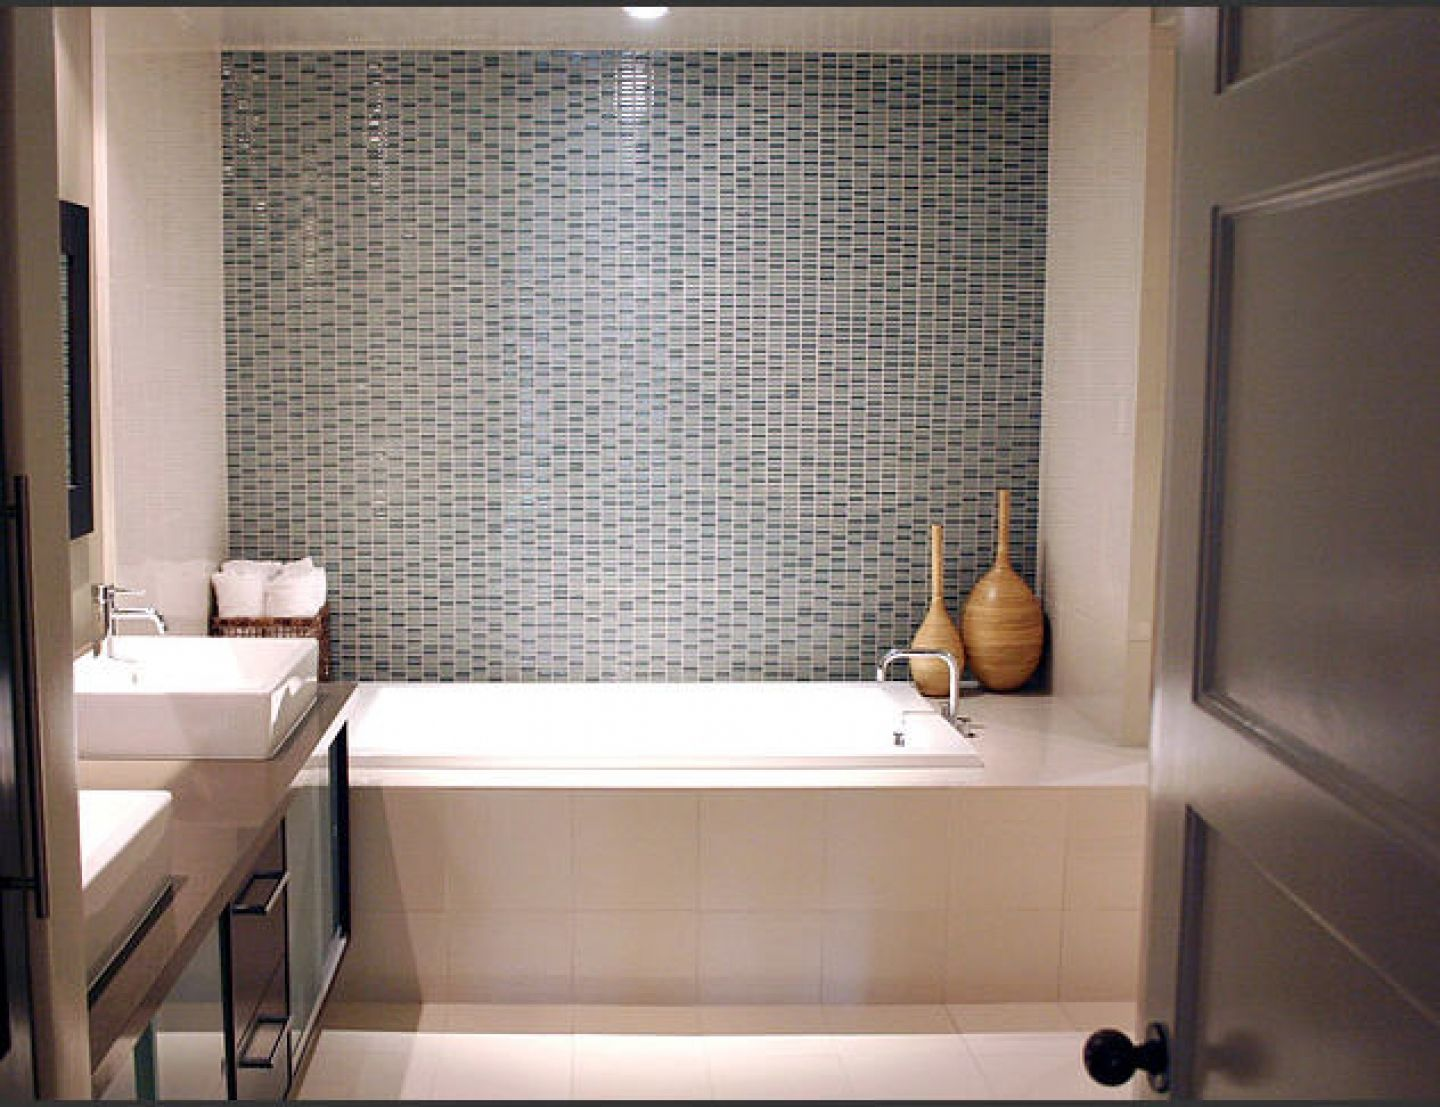 bathroom small bathroom design ideas picture - Design Ideas For Small Bathrooms